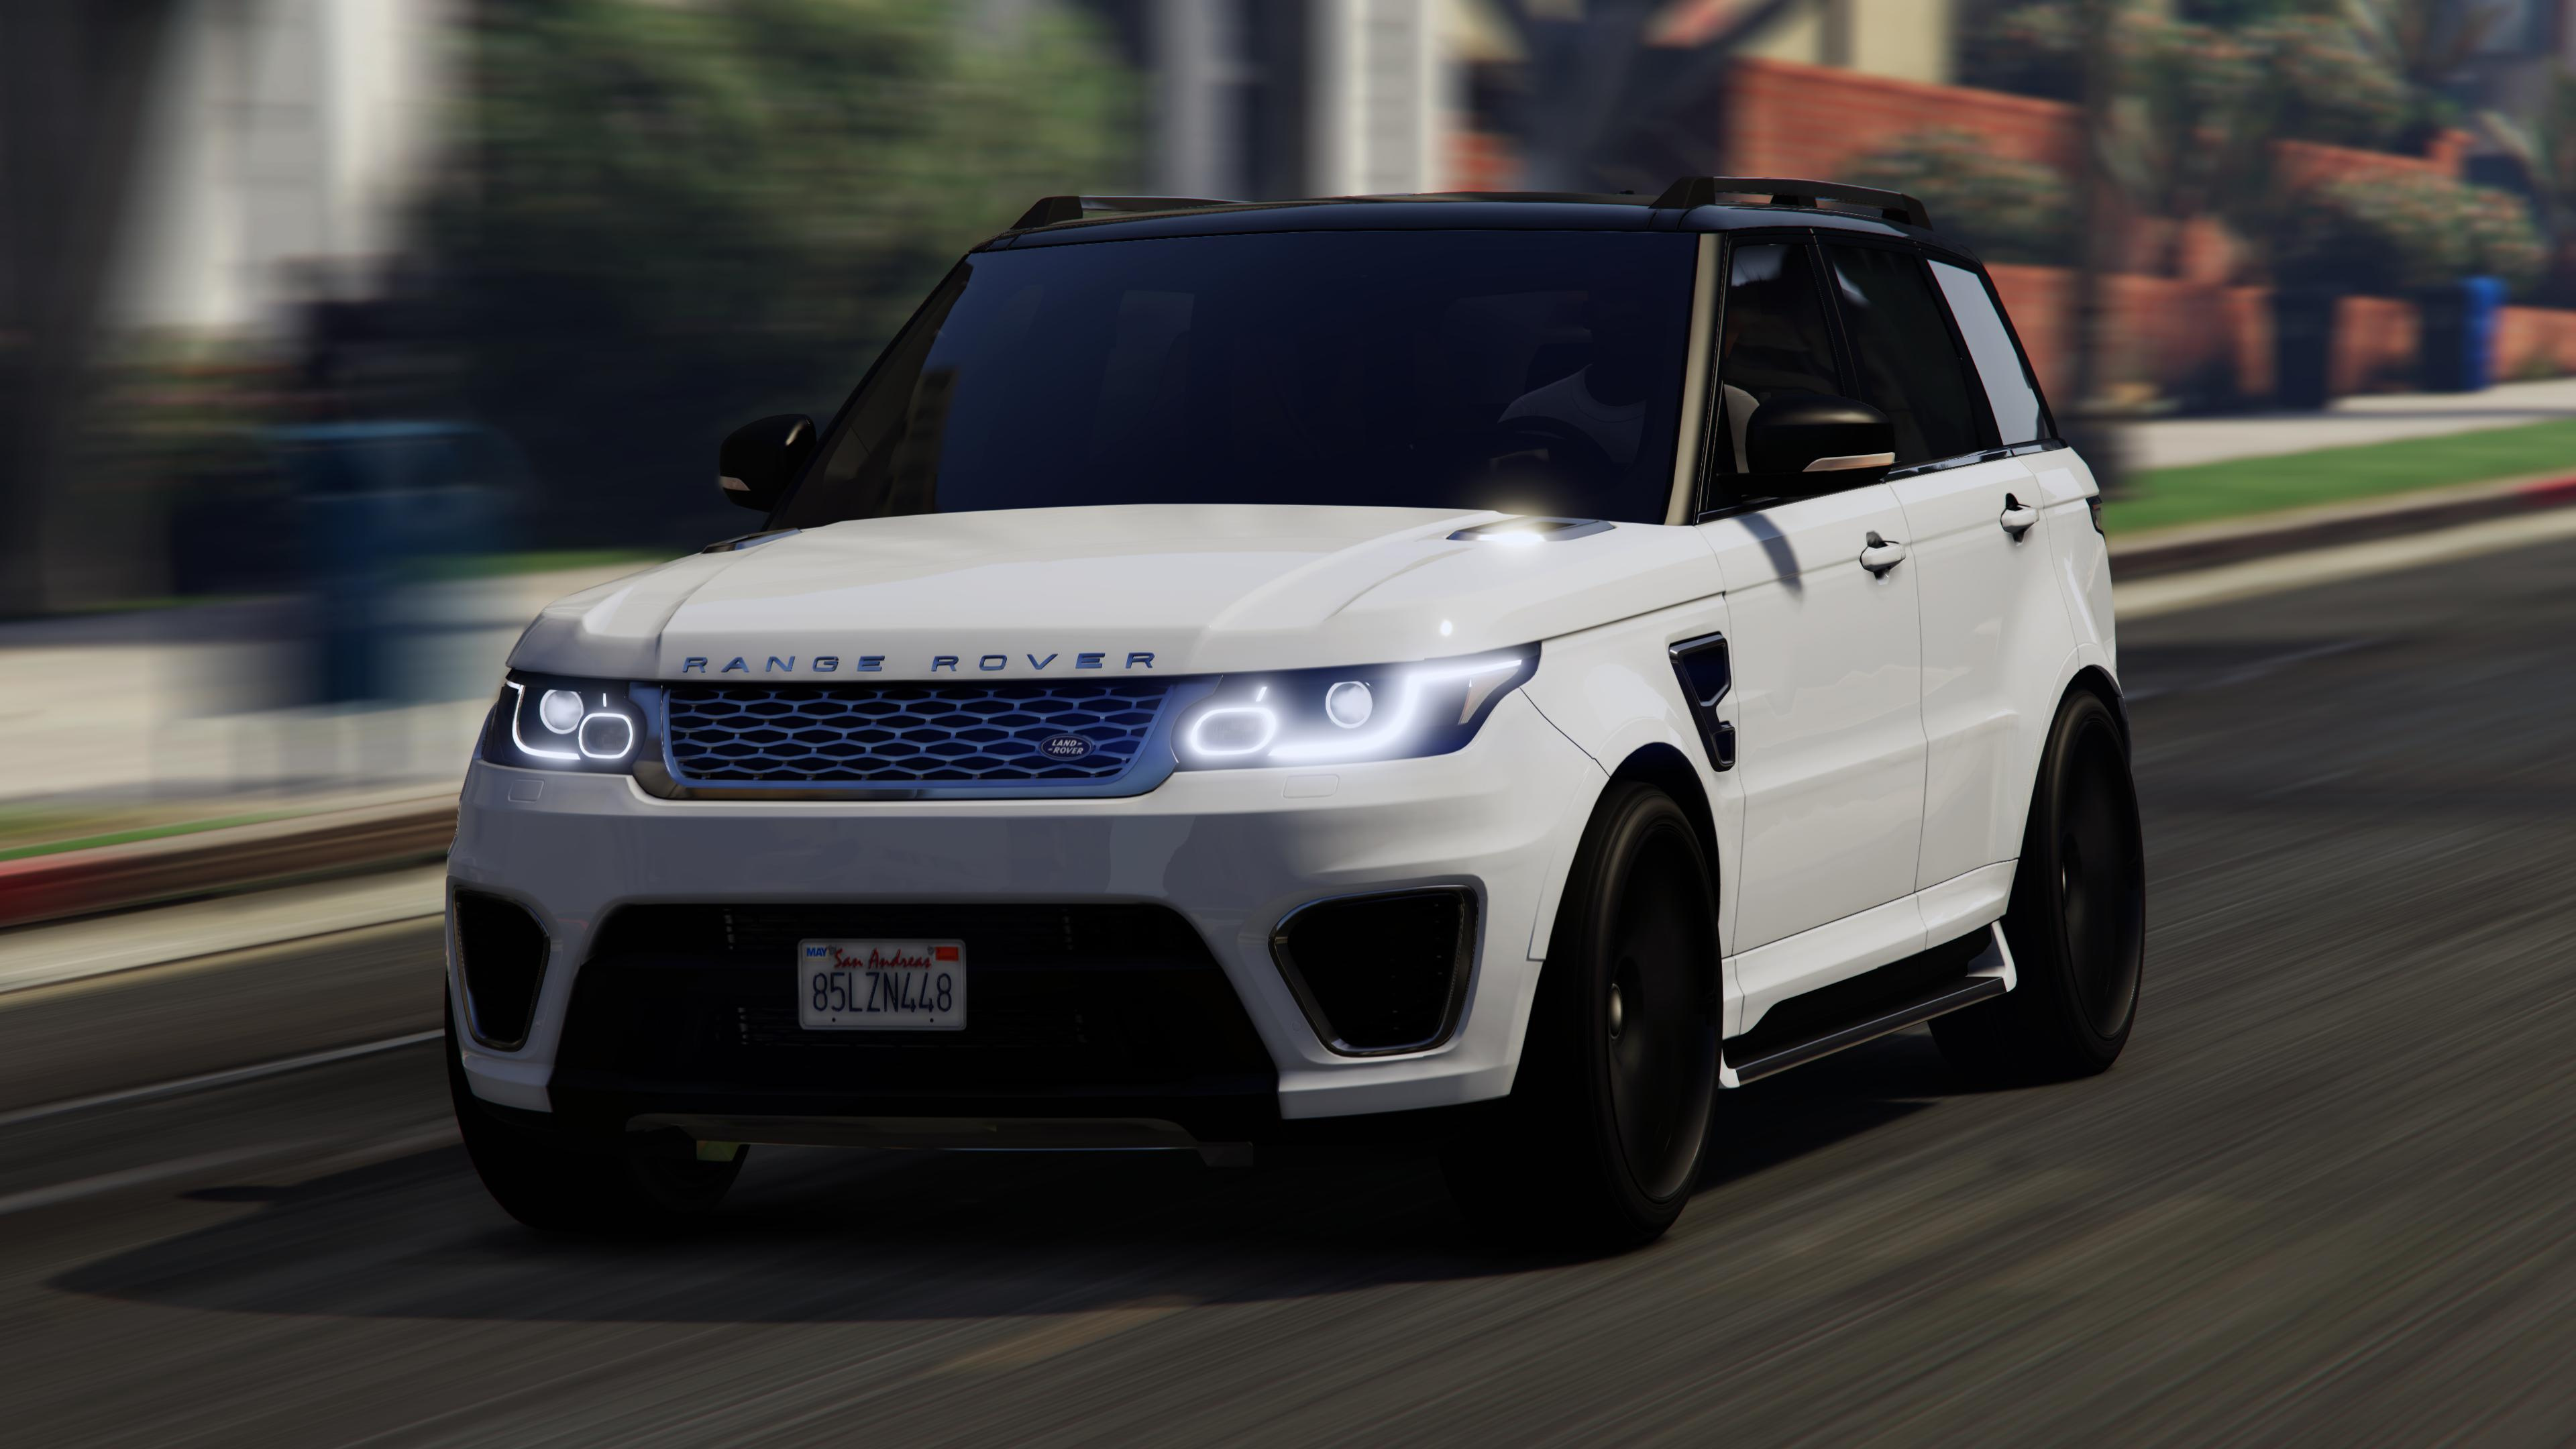 Range Rover Sport [Replace